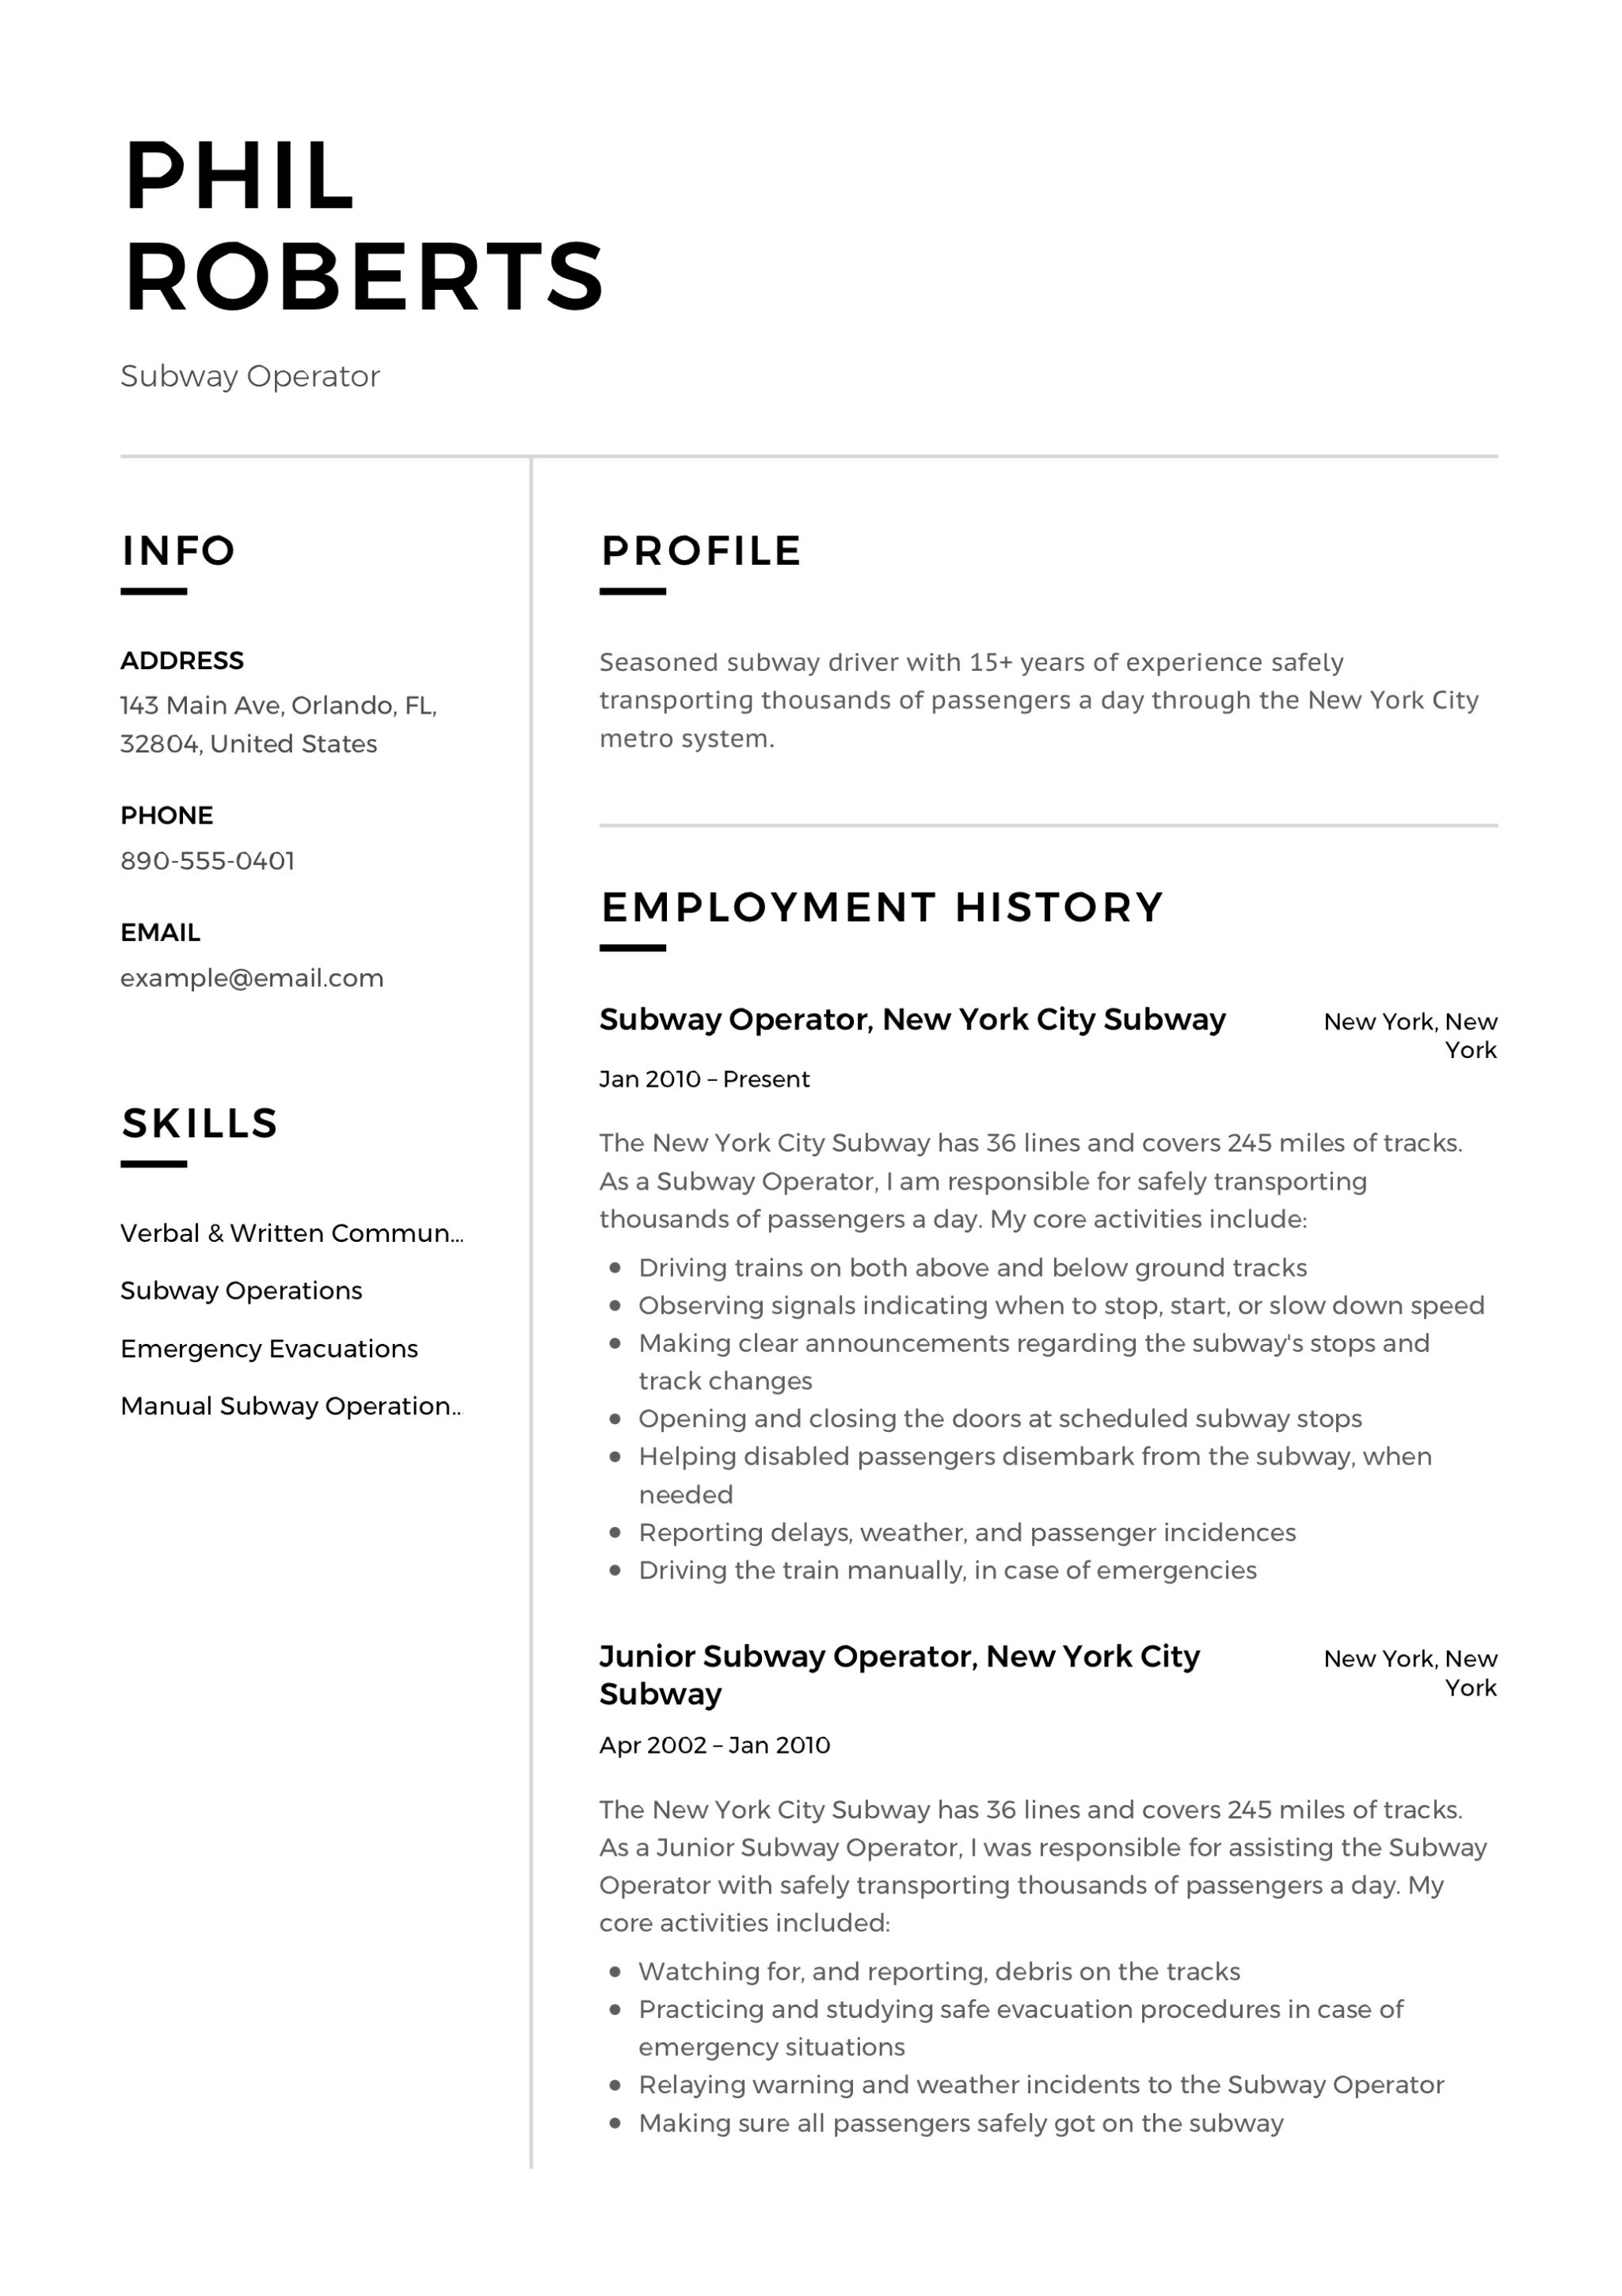 Design Resume Subway Operator